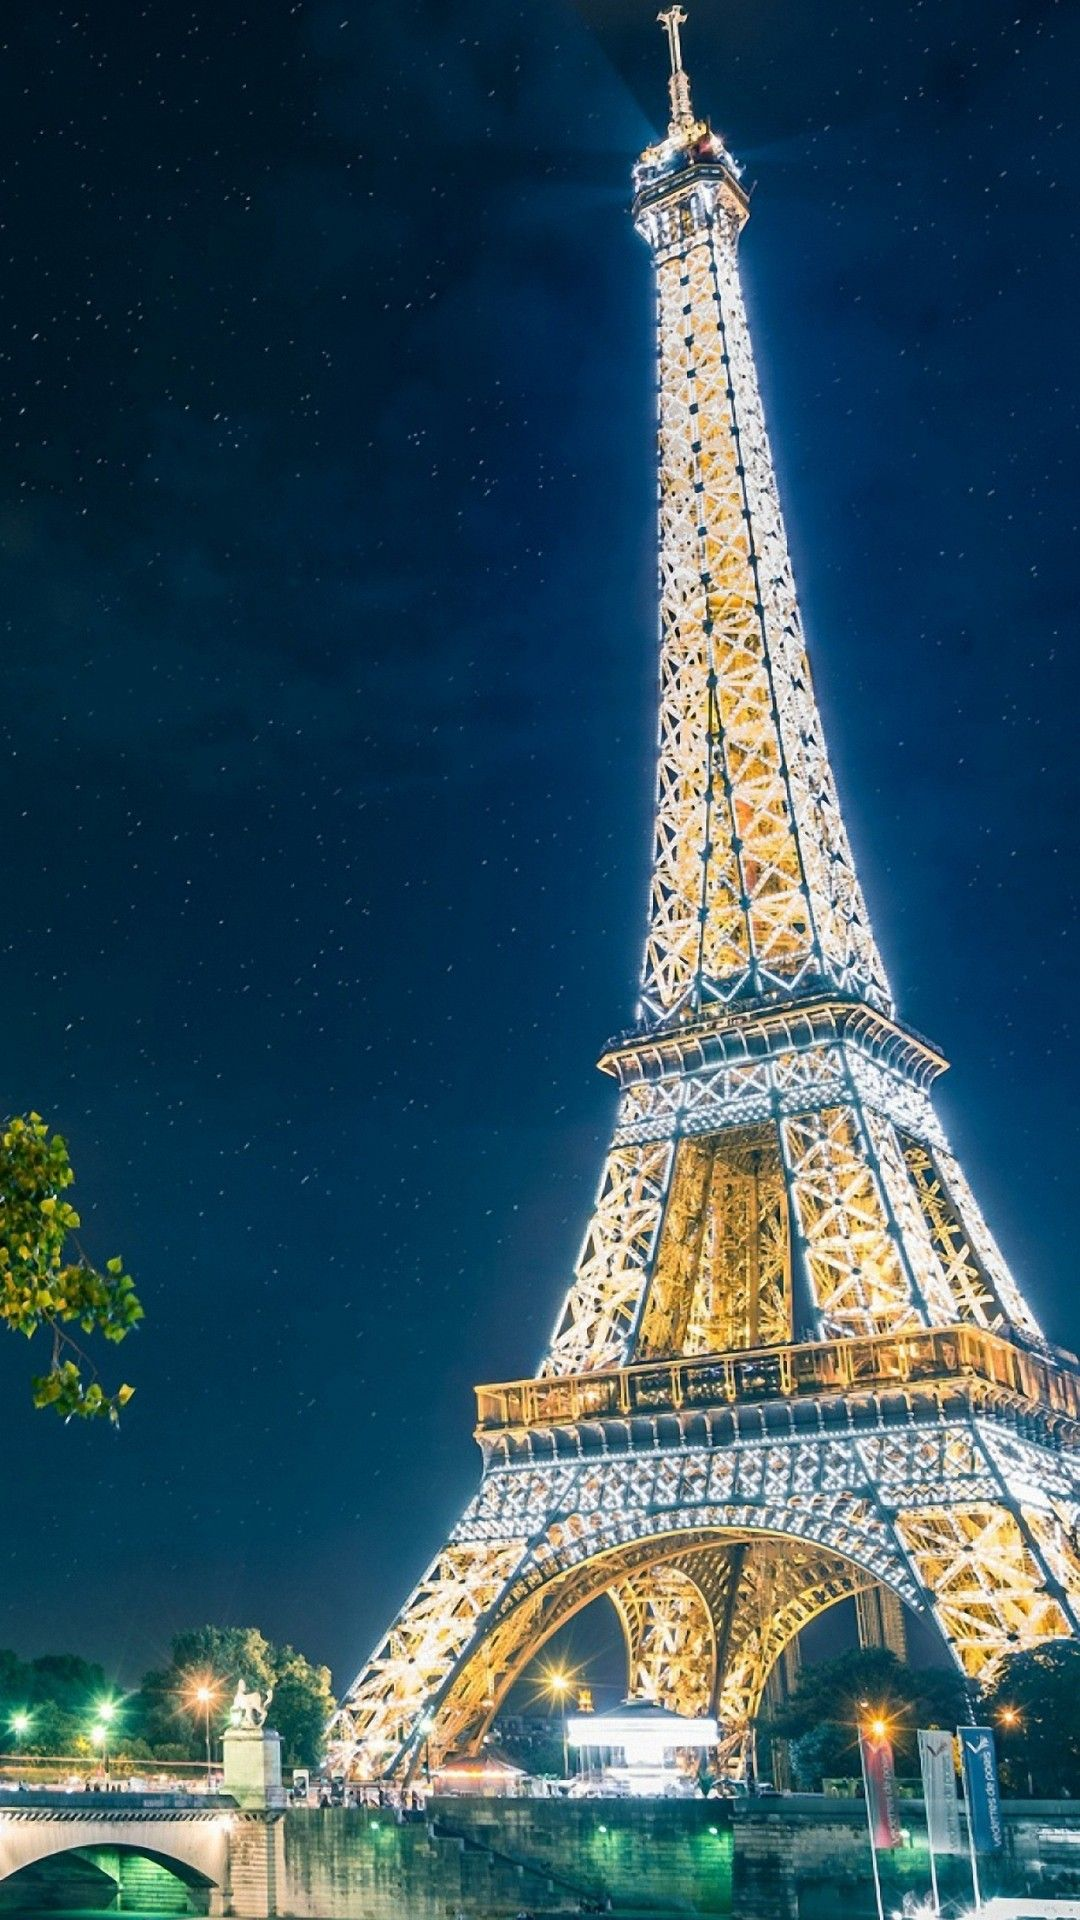 Free Download Eiffel Tower At Night Iphone Wallpapers Eiffel Tower Lights 1080x1920 For Your Desktop Mobile Tablet Explore 25 Paris Night Wallpaper Paris Night Wallpaper Paris At Night Wallpaper Paris Wallpapers